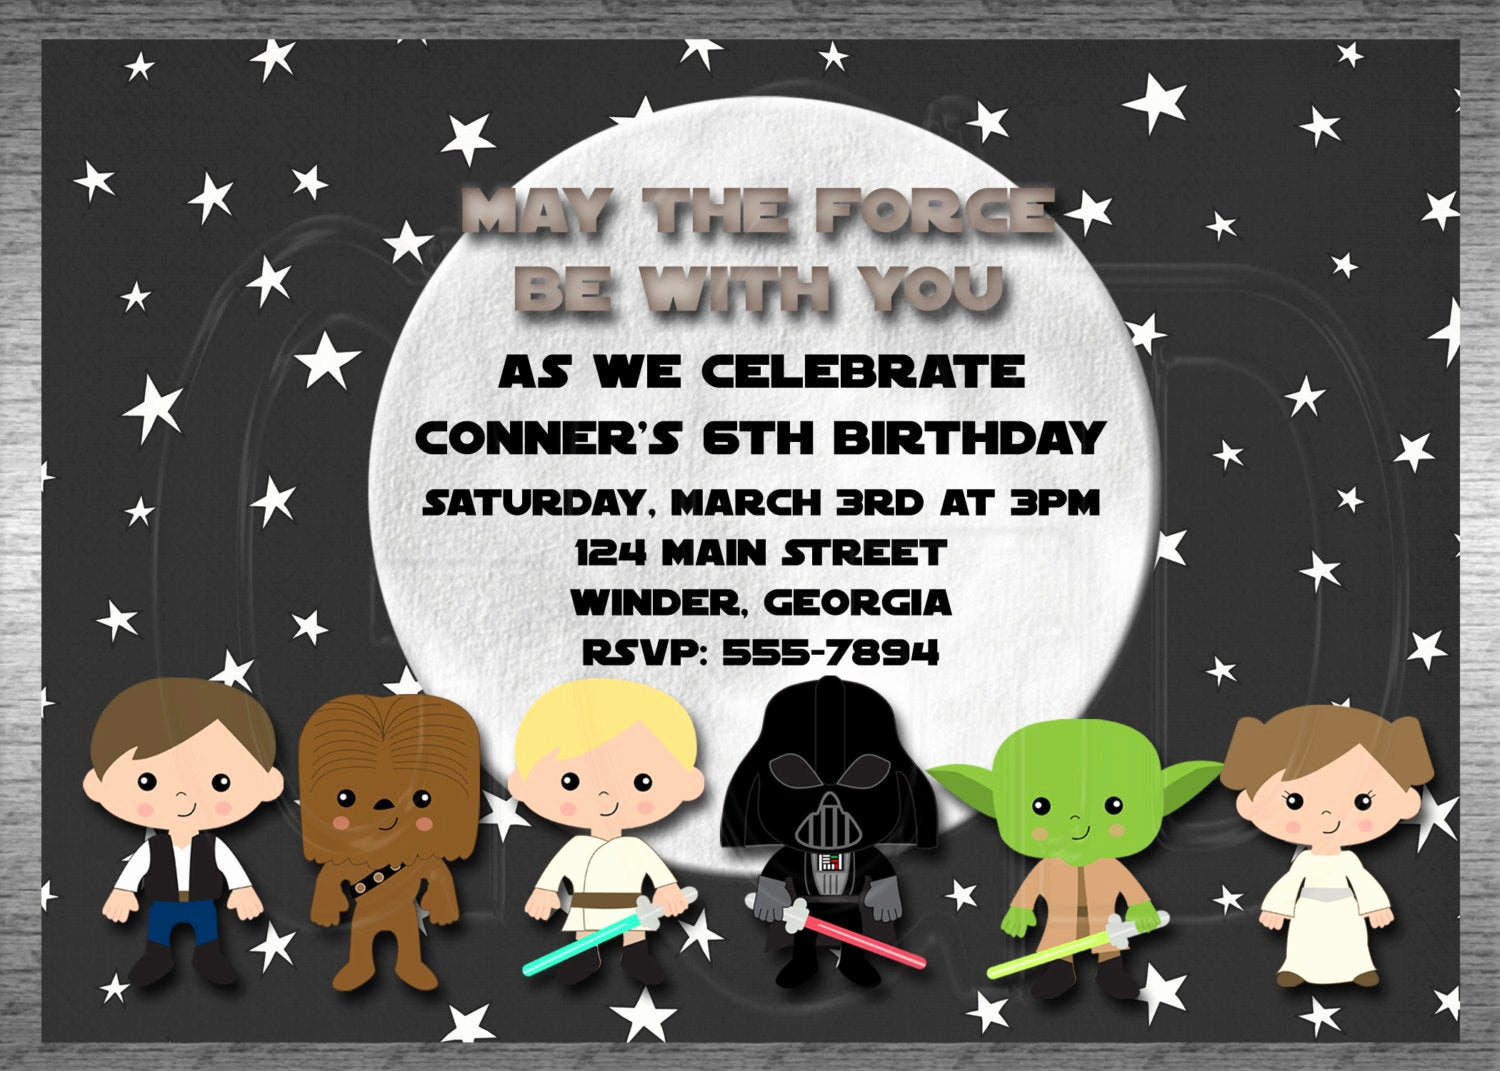 Star Wars Invitation Template Free Beautiful Galaxy Star Wars Invitation Inspired Boy or by